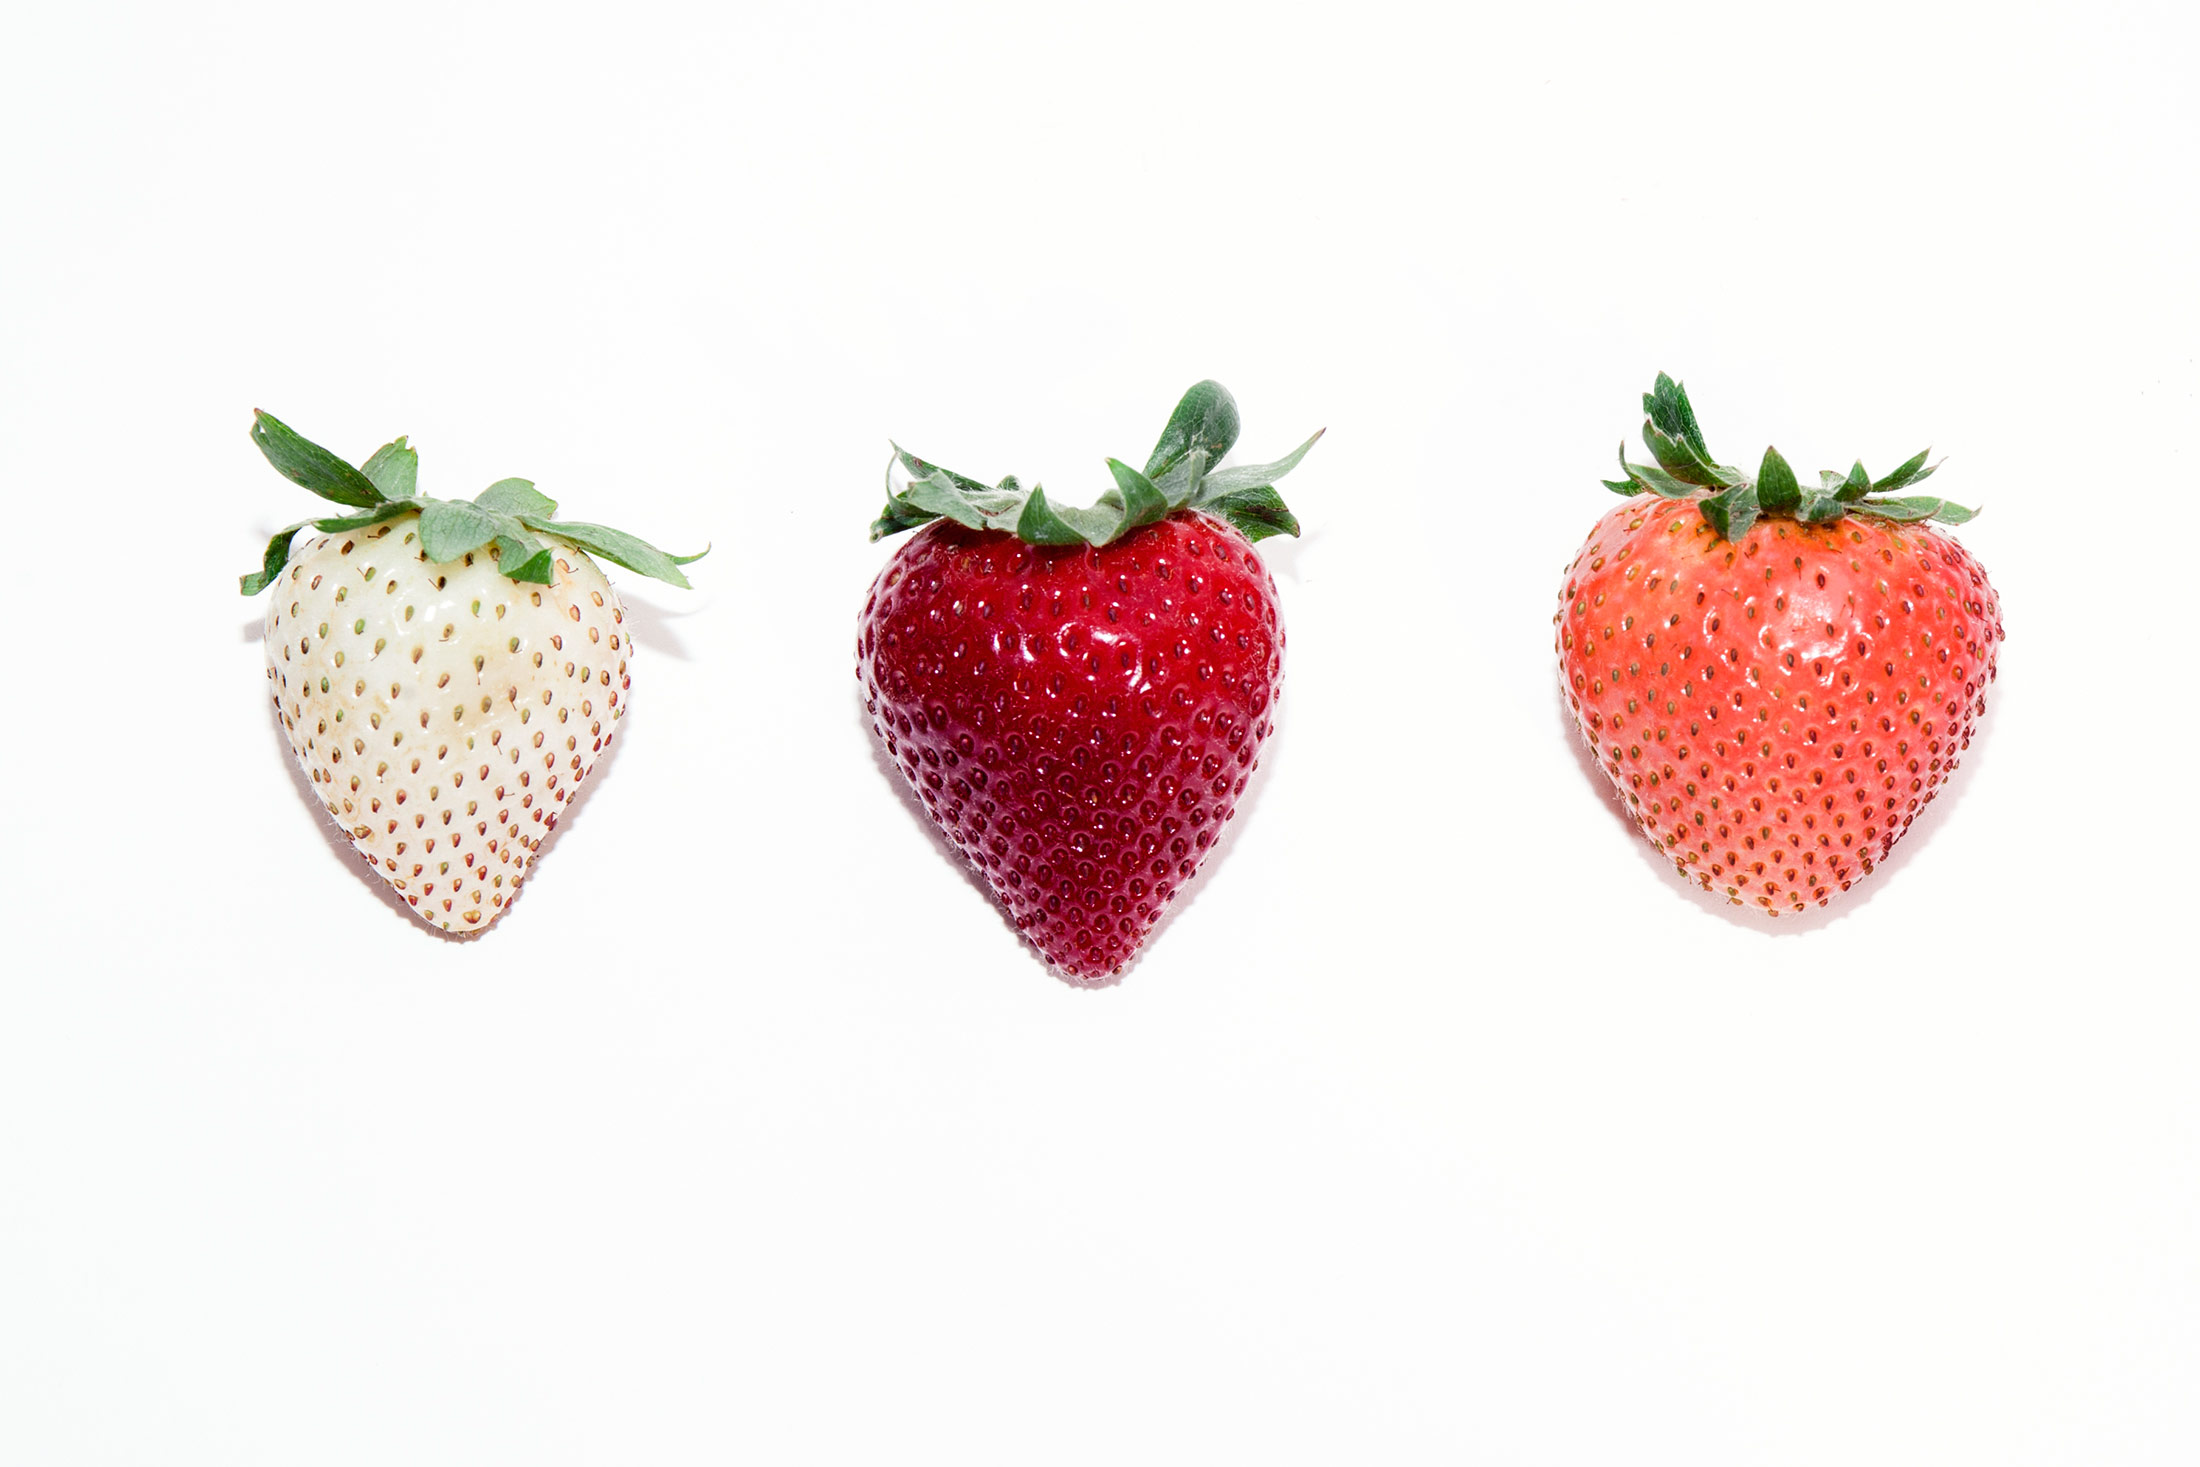 How Driscoll S Is Hacking The Strawberry Of The Future